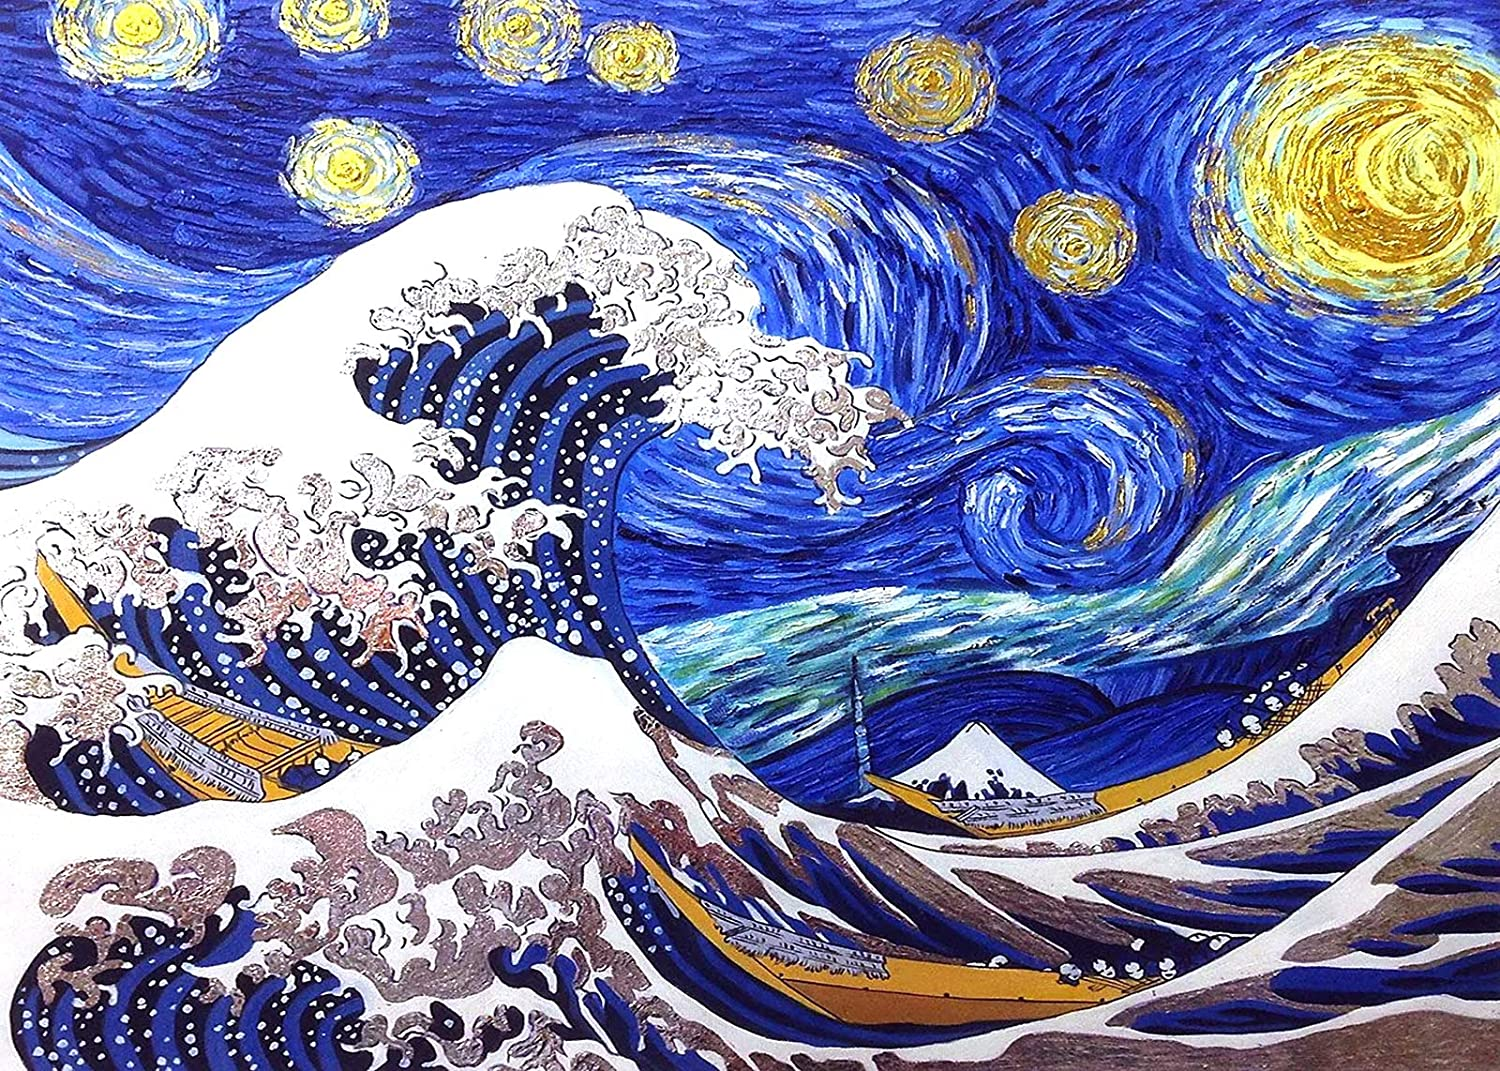 5D Luminious Diamond Painting Kits for Adults Waves of The Sea Craft Home Wall Decor Rhinestone Diamond Starry Sky Accessories Handpaint Gift